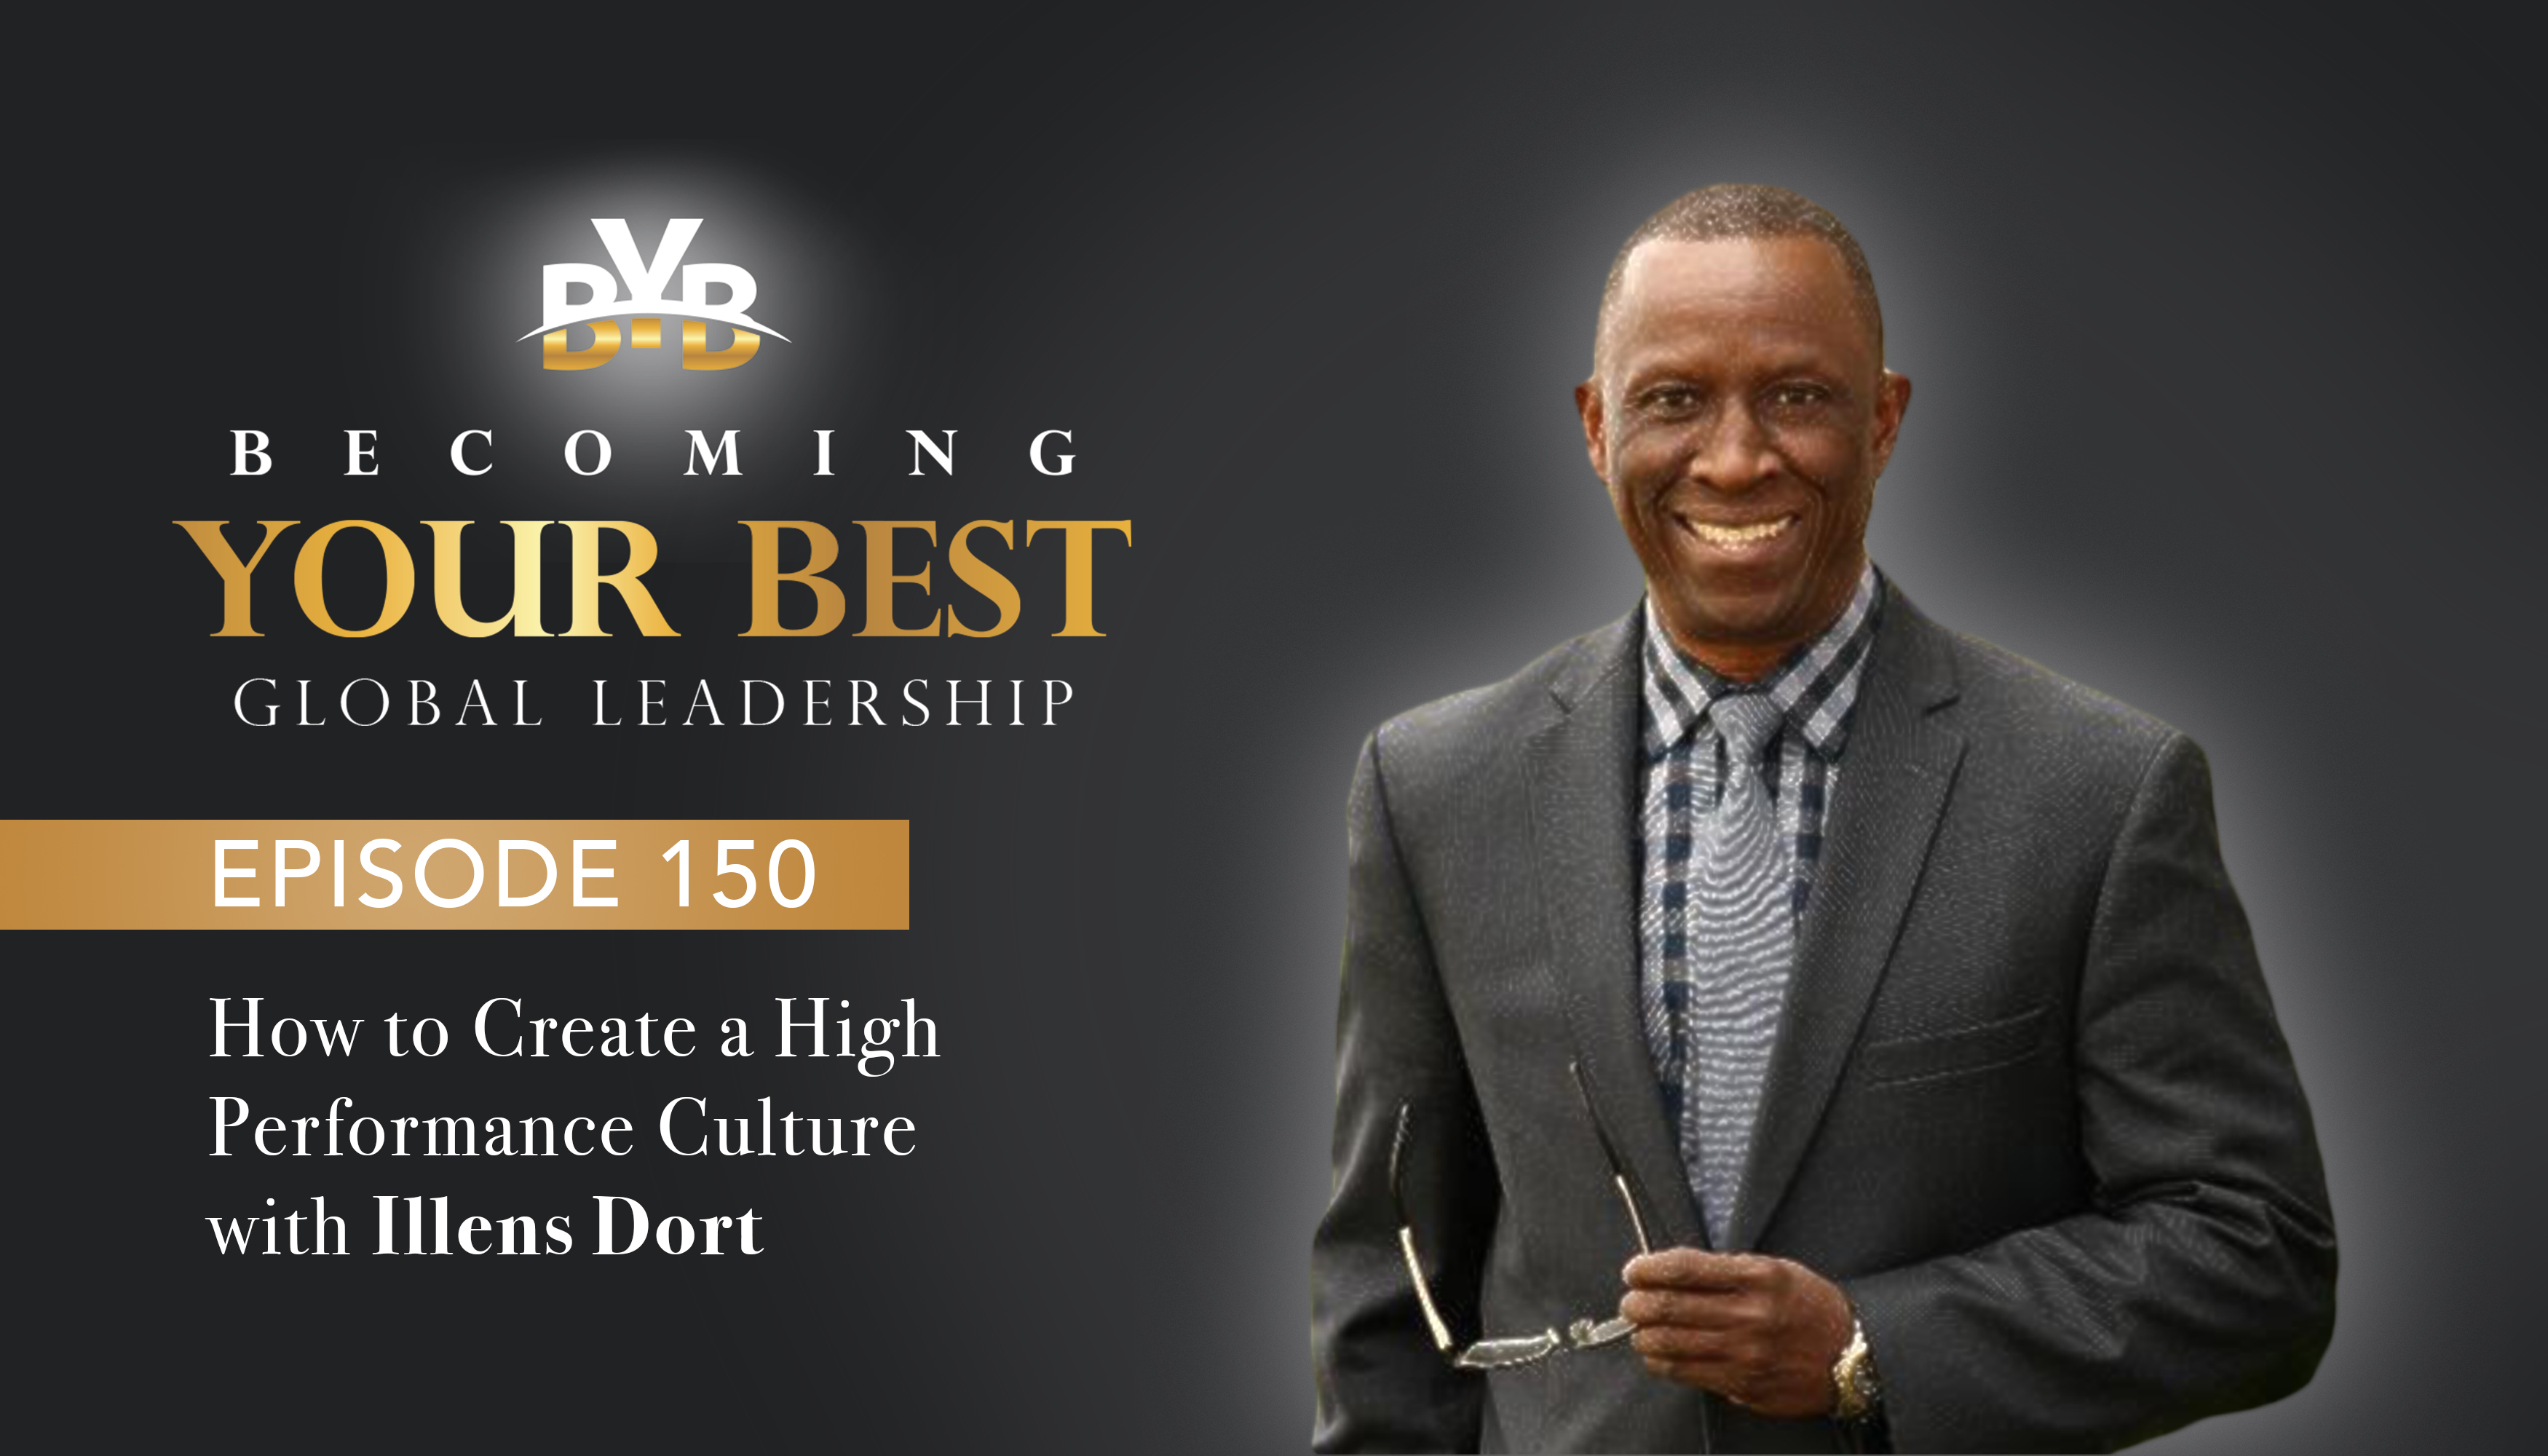 Episode 150: How to Create a High Performance Culture with Illens Dort